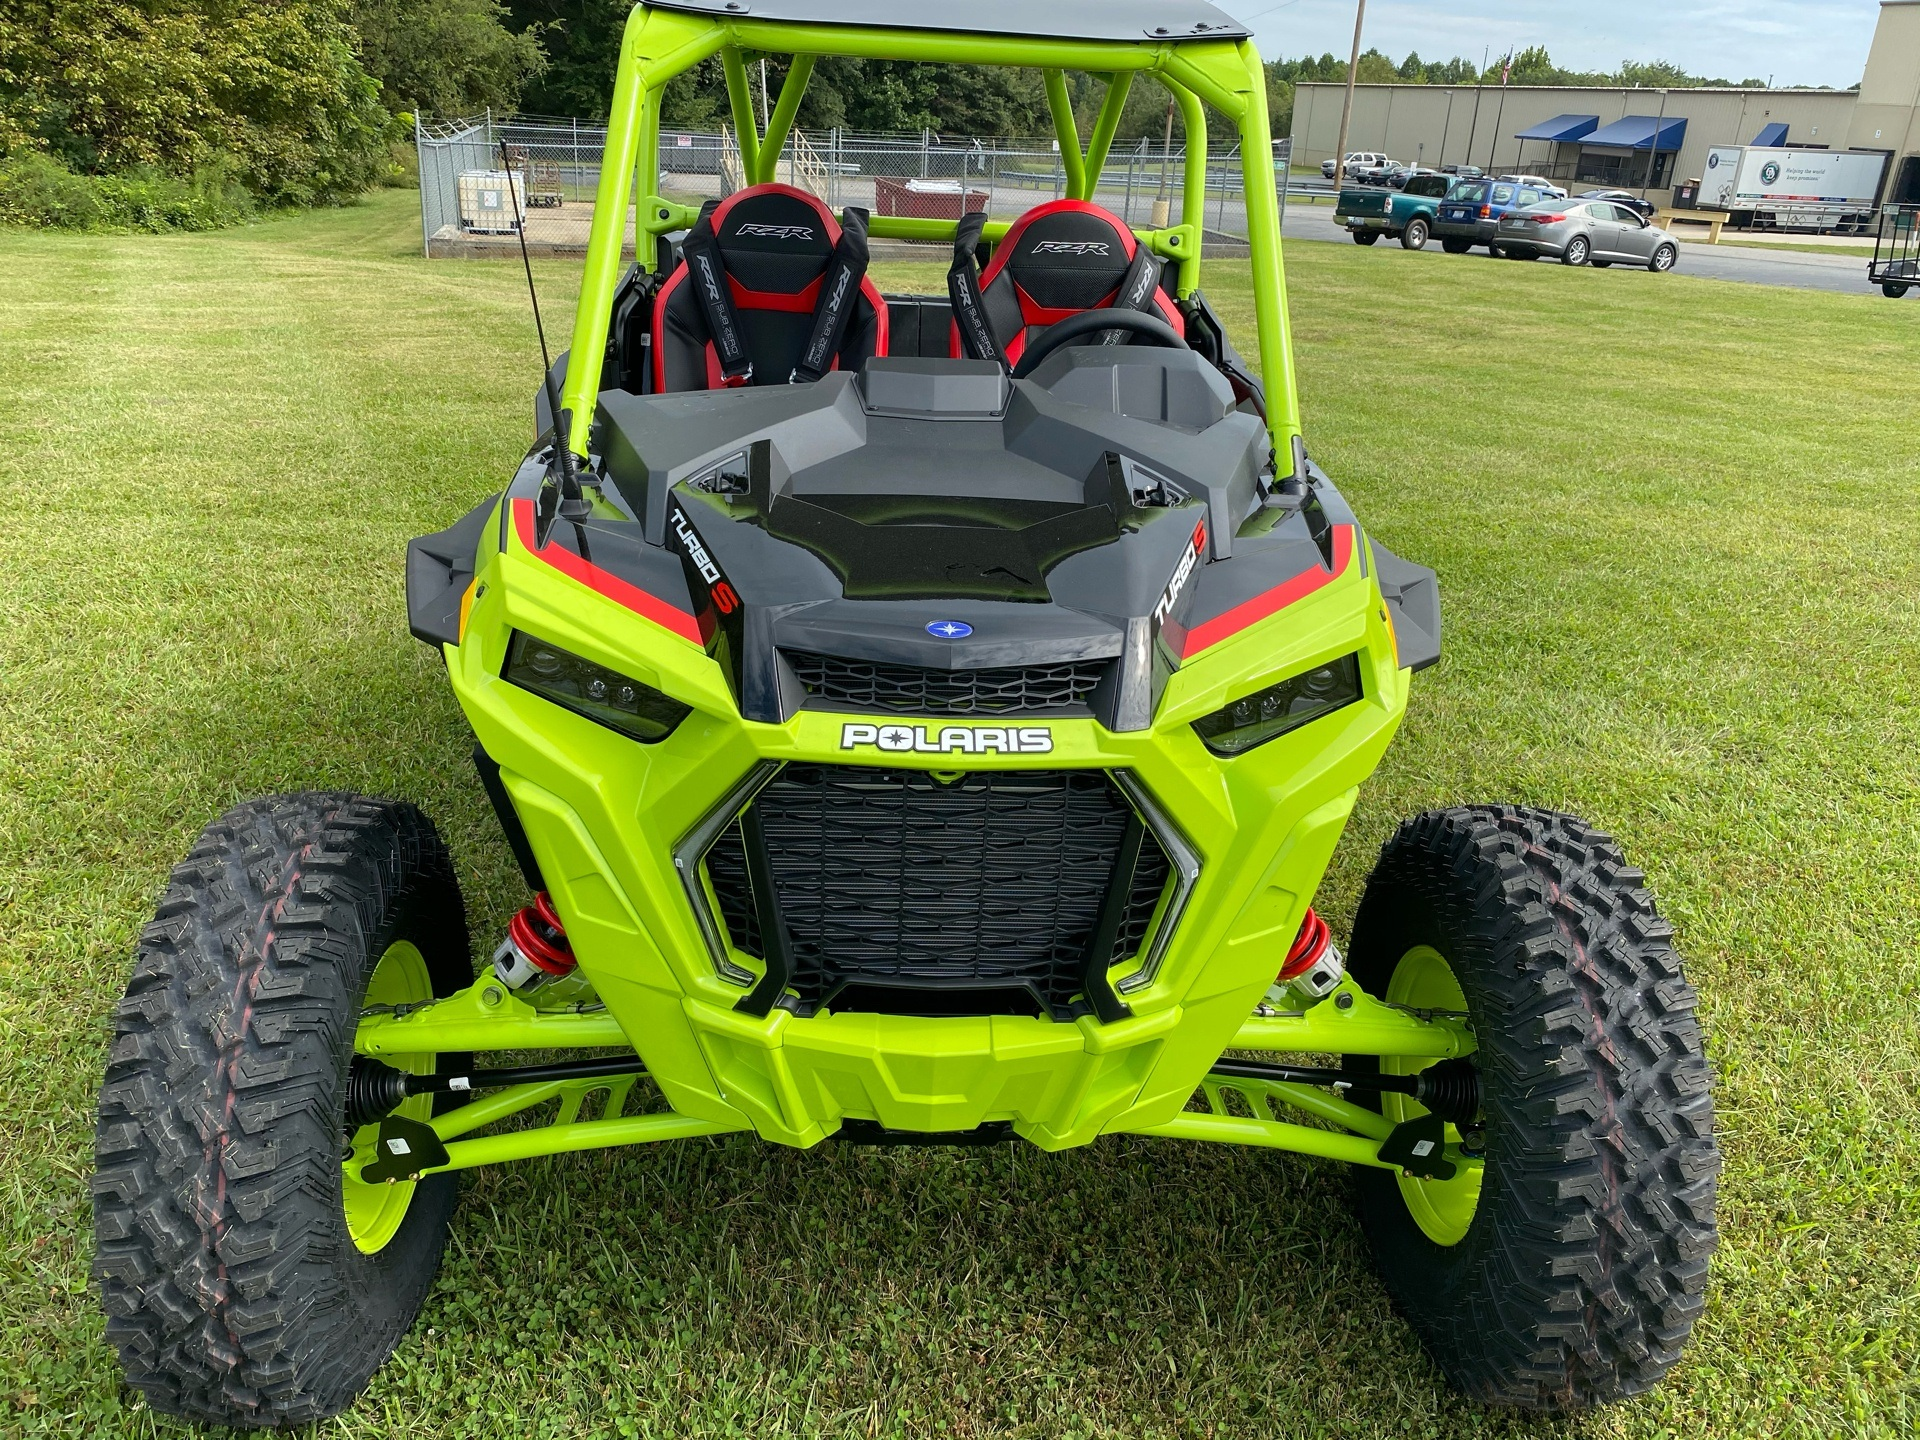 2021 Polaris RZR Turbo S Lifted Lime LE in Statesville, North Carolina - Photo 3